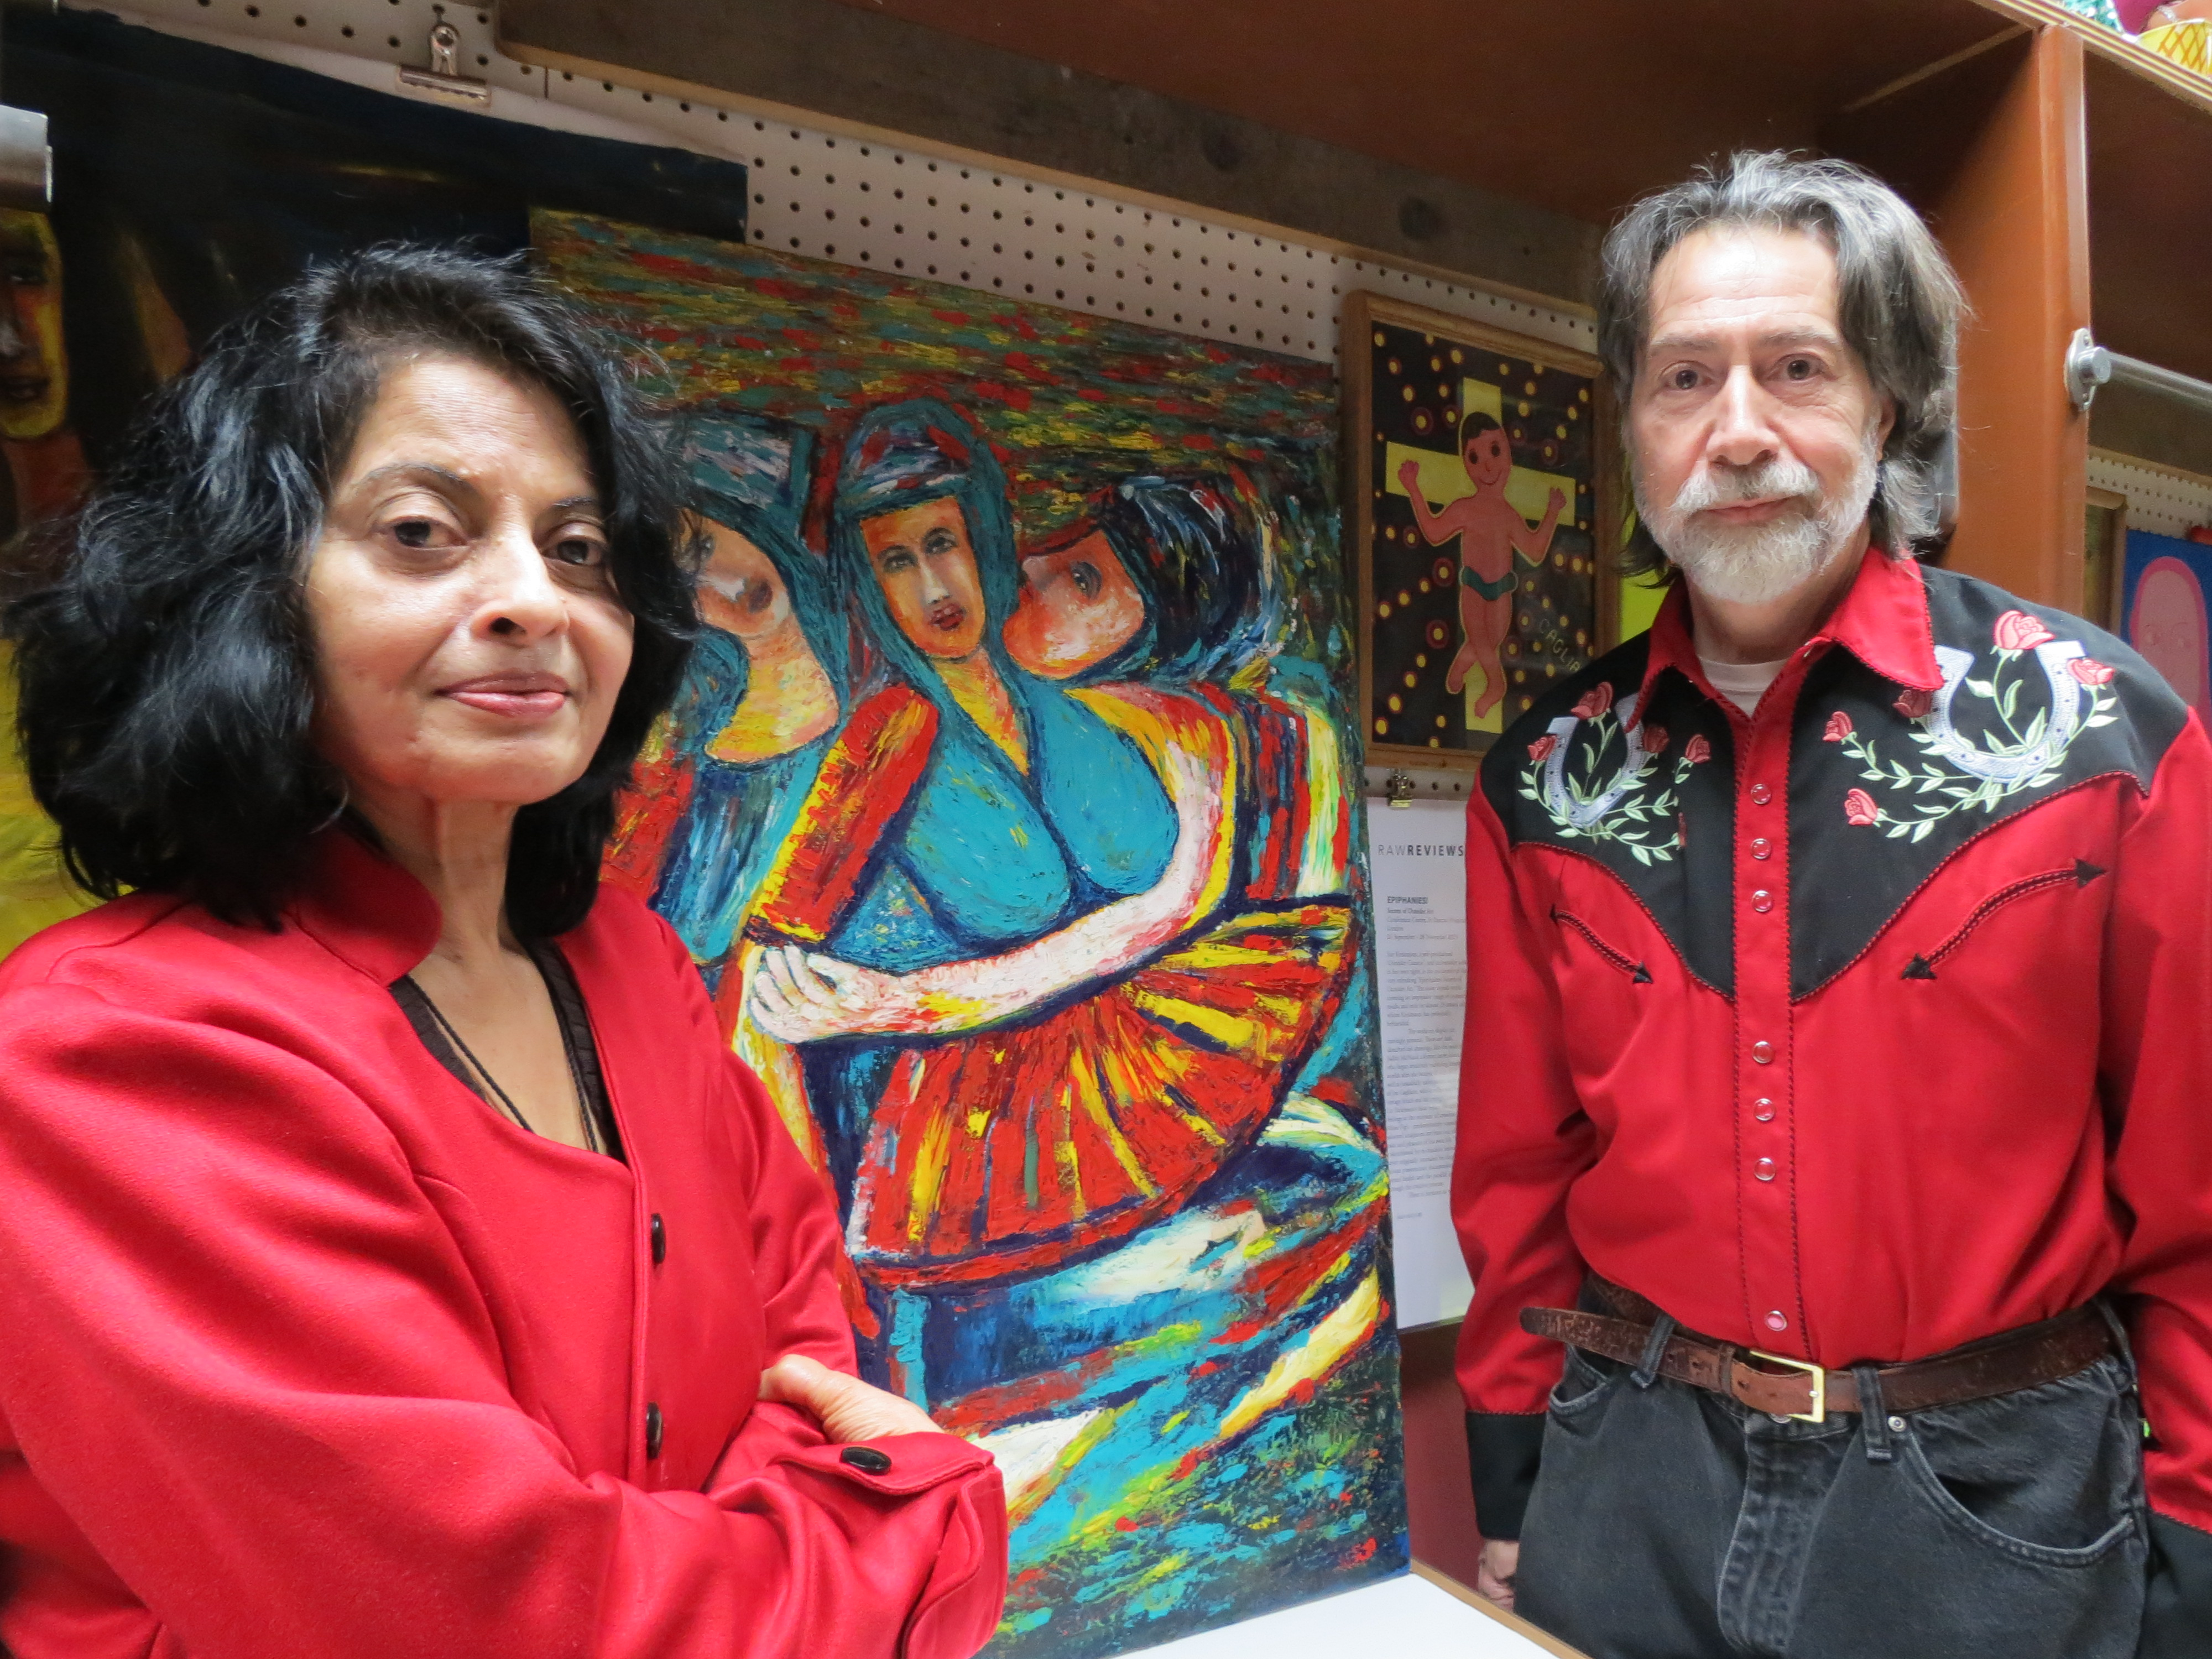 At Glendale Art Gallery, Explorations of Family and Place